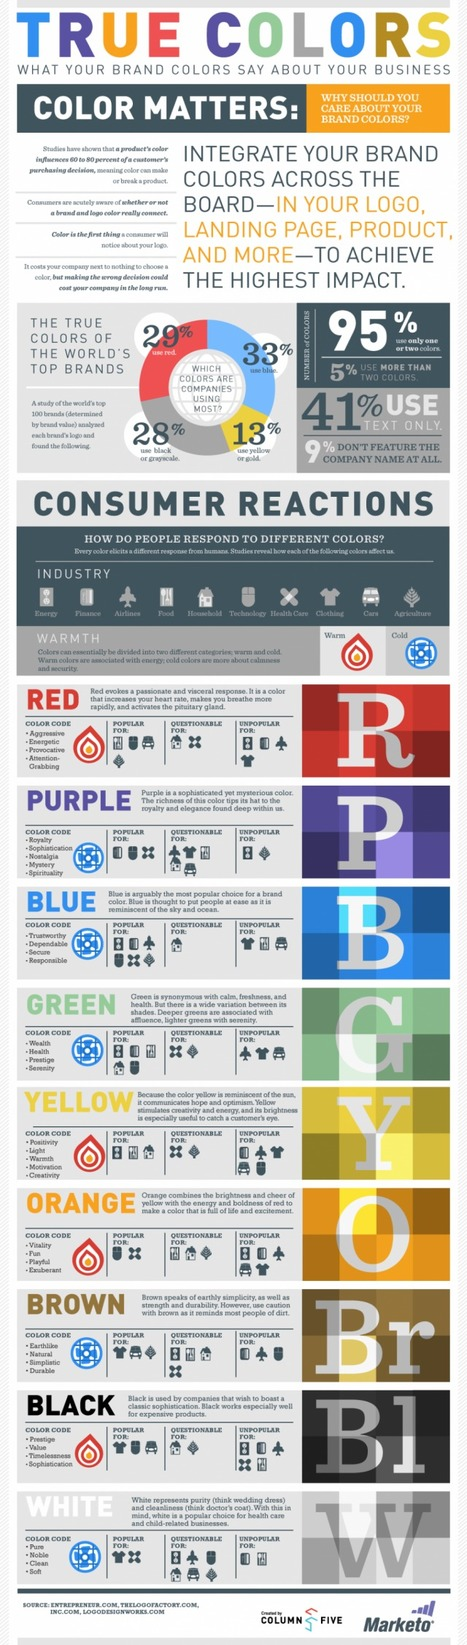 True Colors, Branded Colors | color for branding | Scoop.it